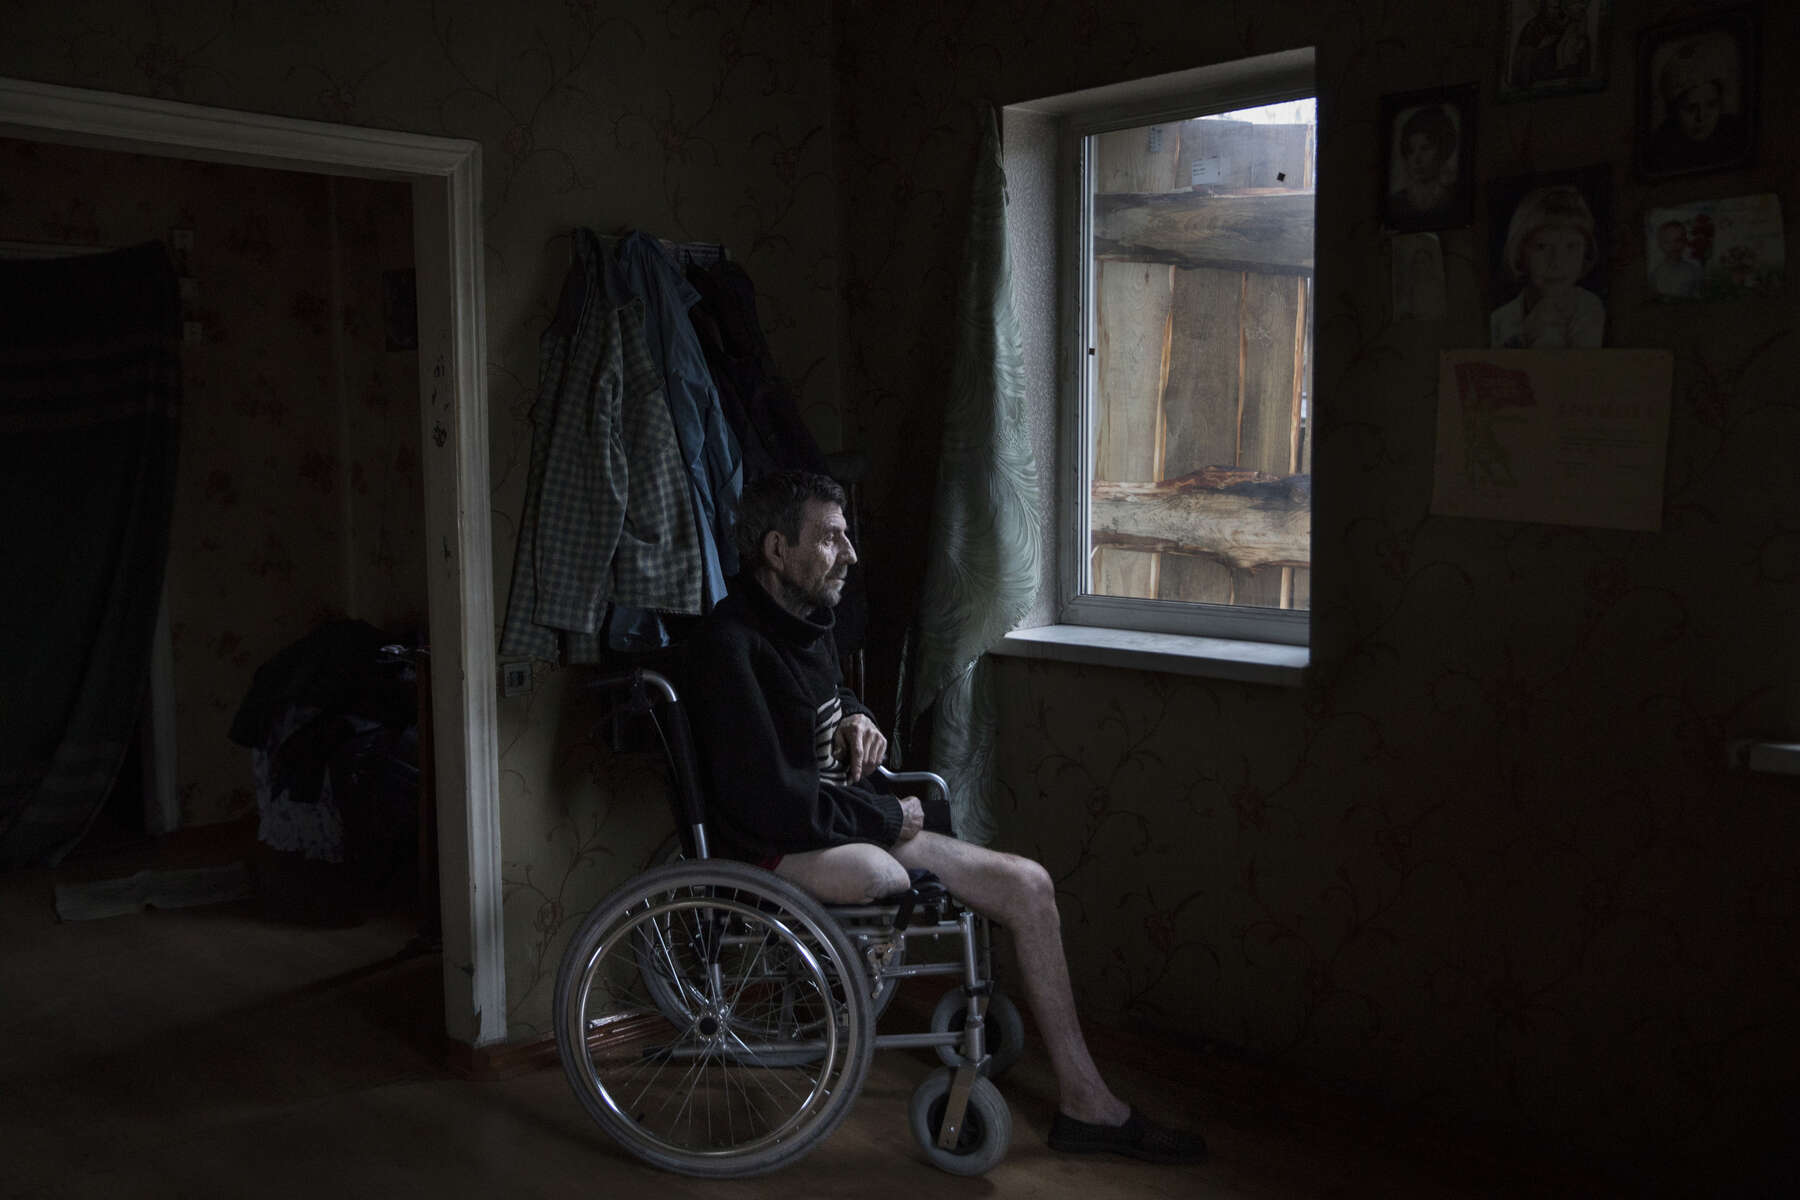 Avdiivka: Vladimir Mamoshyn, age 65, sits in his wheelchair, his wife died in 2010, now he lives alone his children abandoned him. He resides in the war-torn  Avdiivka village, less than a kilometer from the contact line where daily shelling and gunfire can be heard. In 2016, Vladimir lost his leg due to a vascular disease, with poor access to health facilities along with inadequate health care. After having a heart attack a few months later in 2017 he lost the use of his left hand, now he lives in a wheelchair depending on family and  friends to help him.